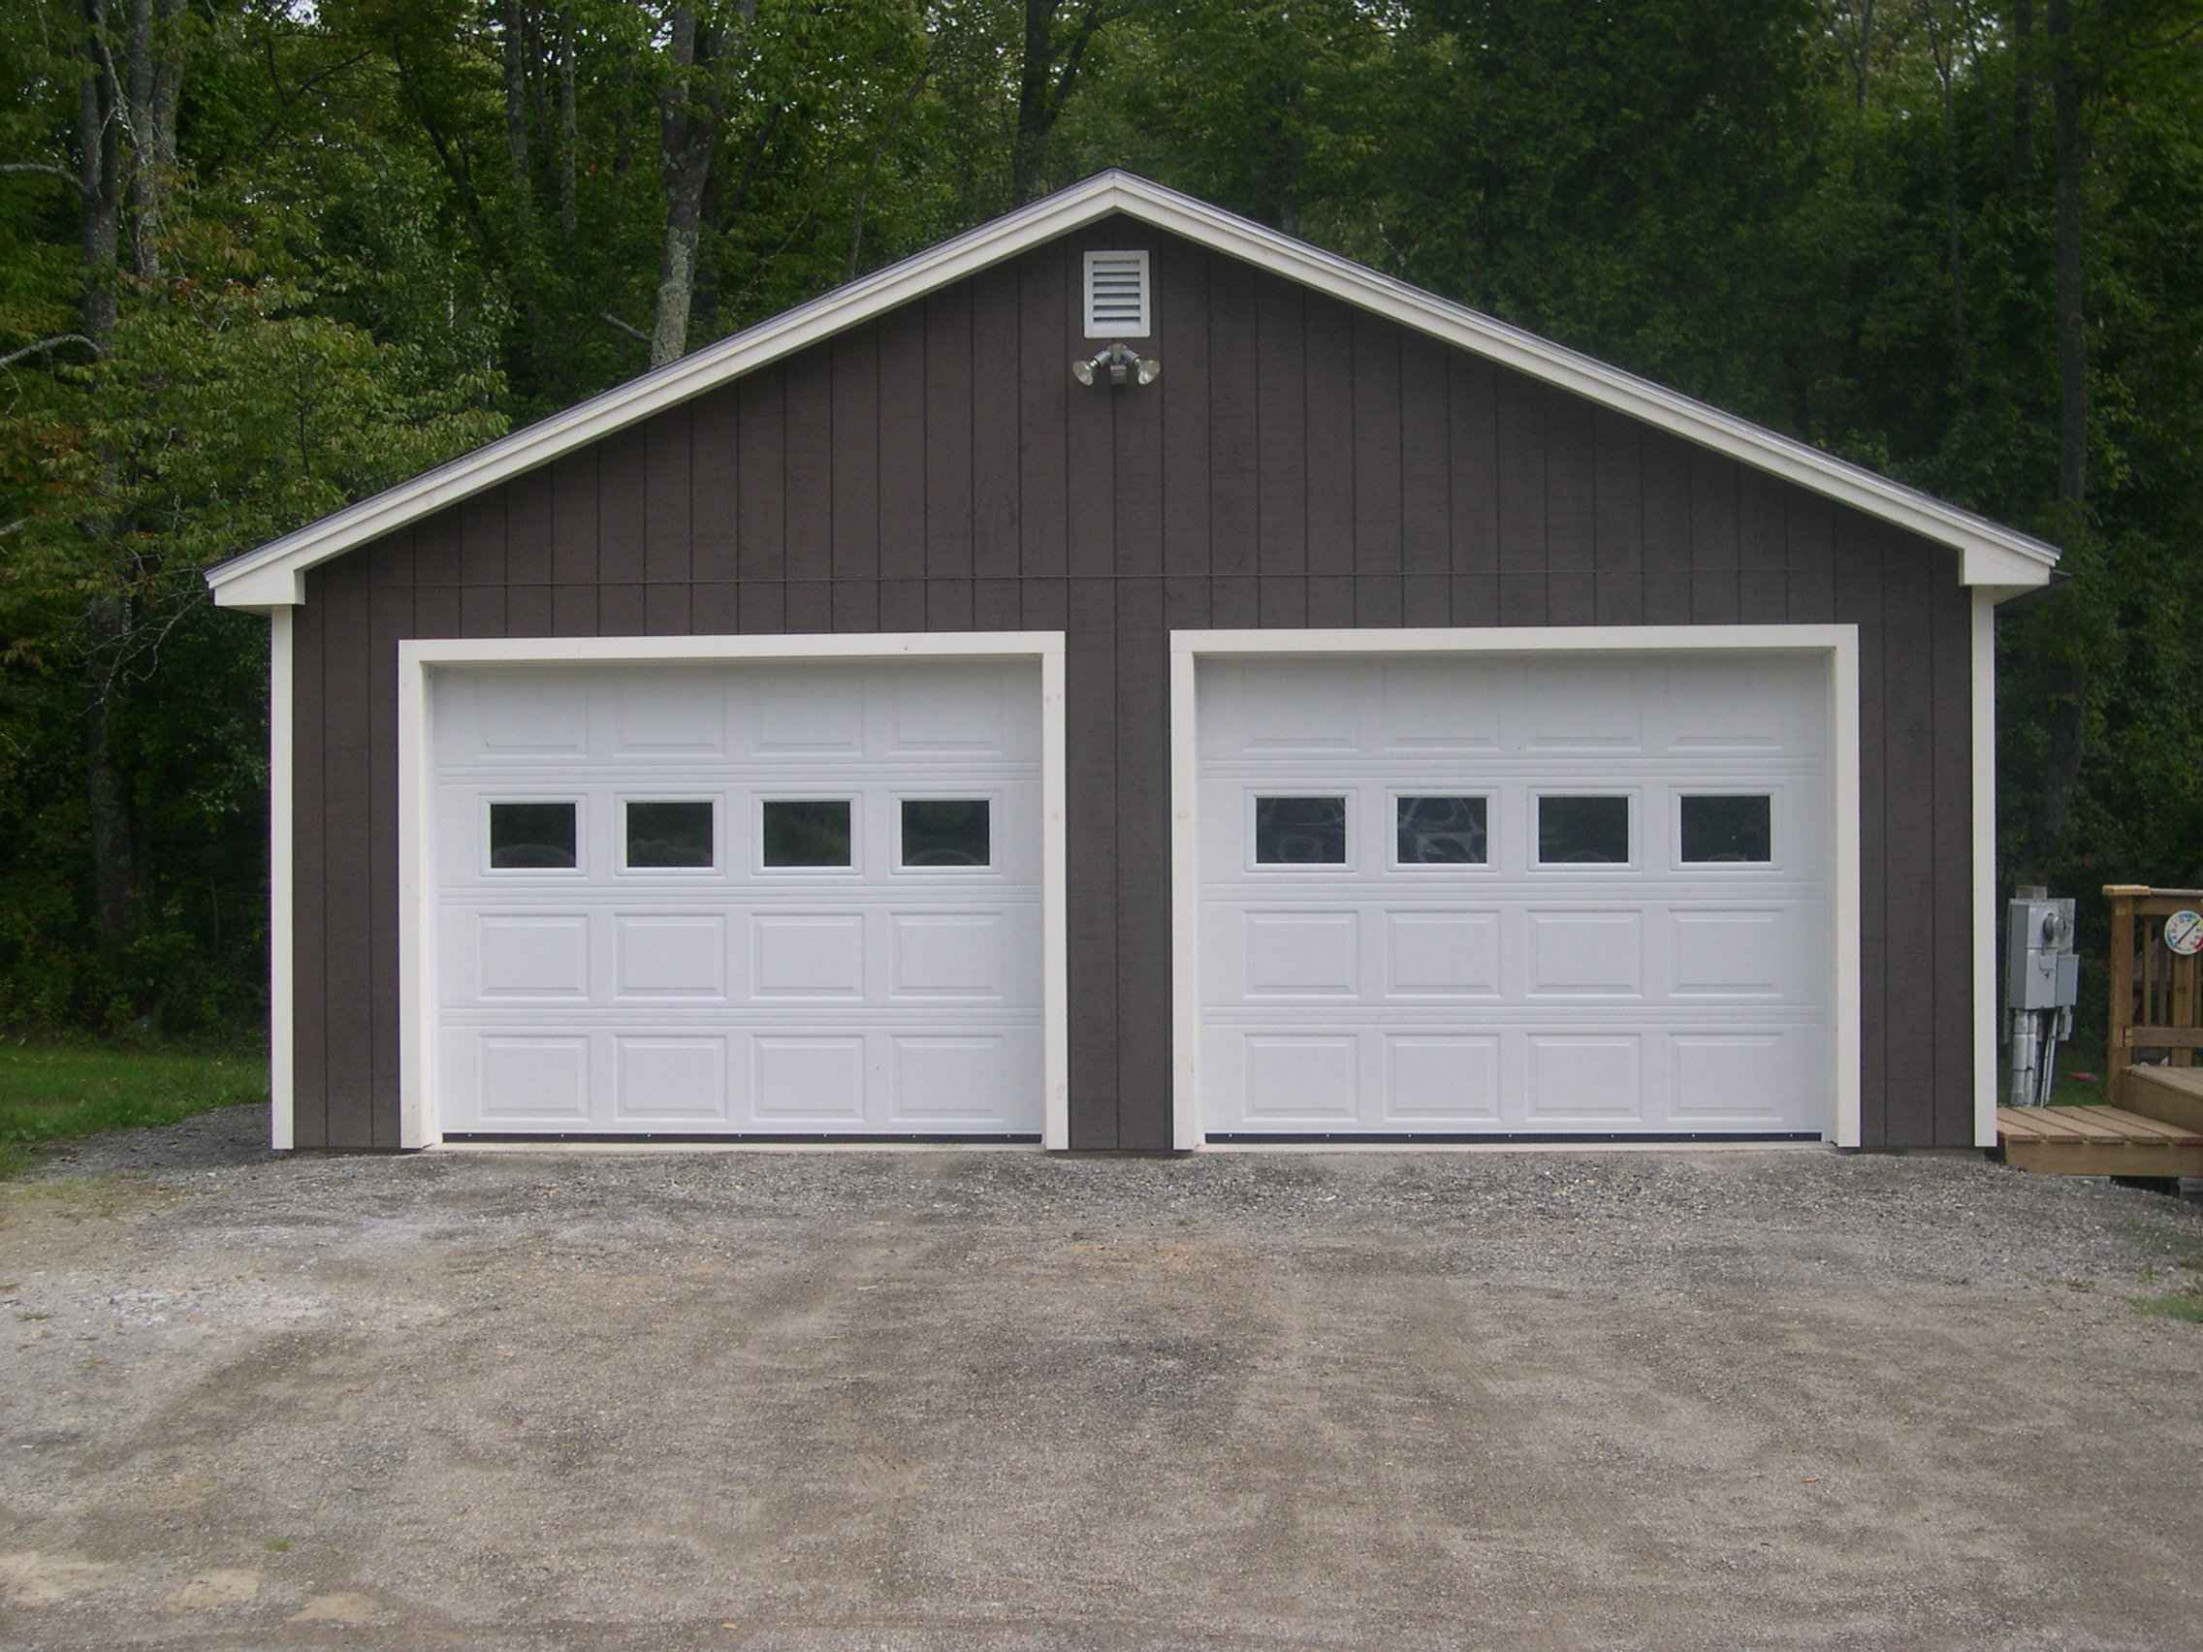 New Detached Garage Plan With Apartment Shed Design Don T ..